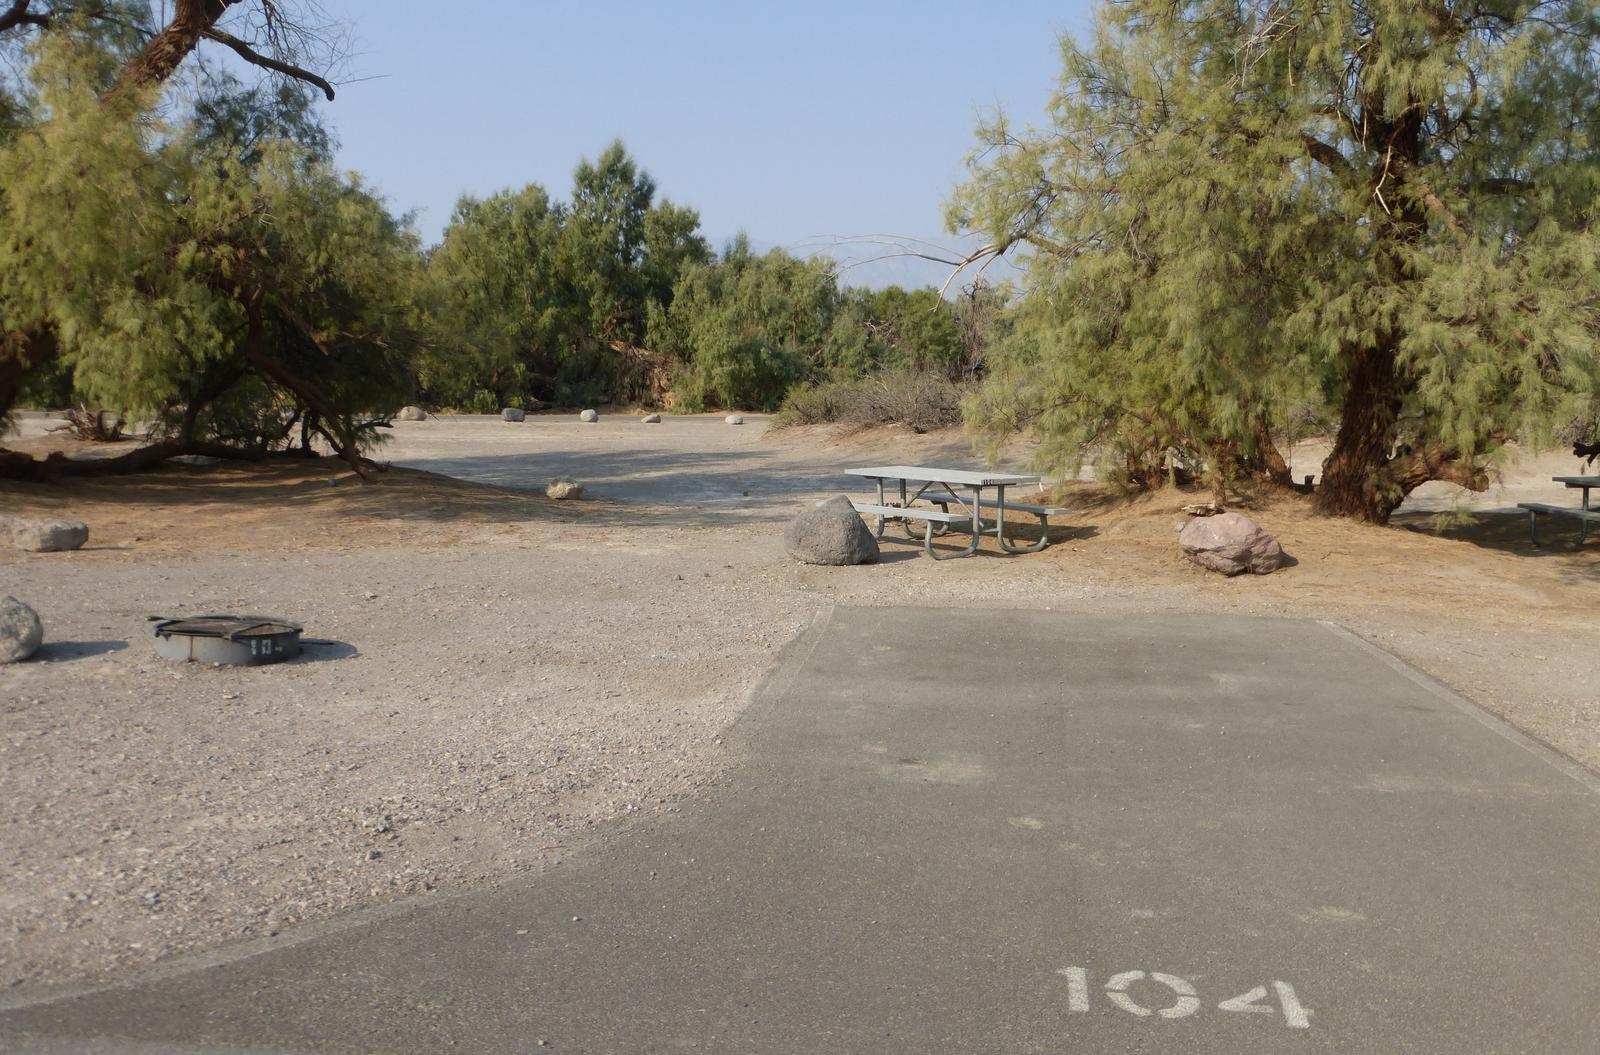 Furnace Creek Campground standard nonelectric tent only drive in site #104 with picnic table and fire ring.